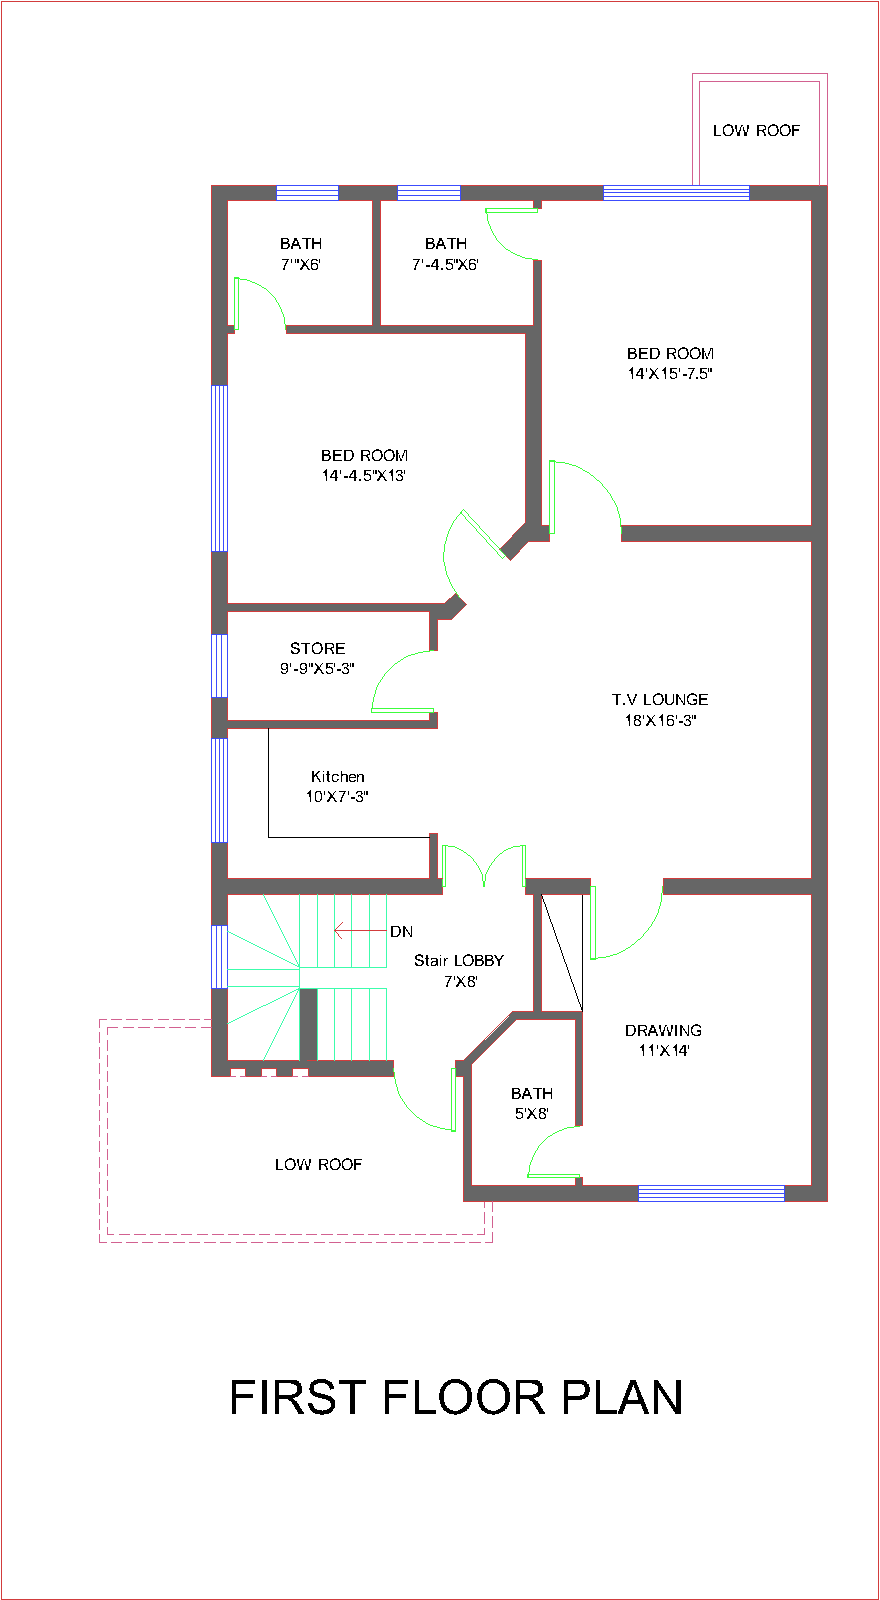 House plans and design architectural design of 10 marla for Home map design free layout plan in india